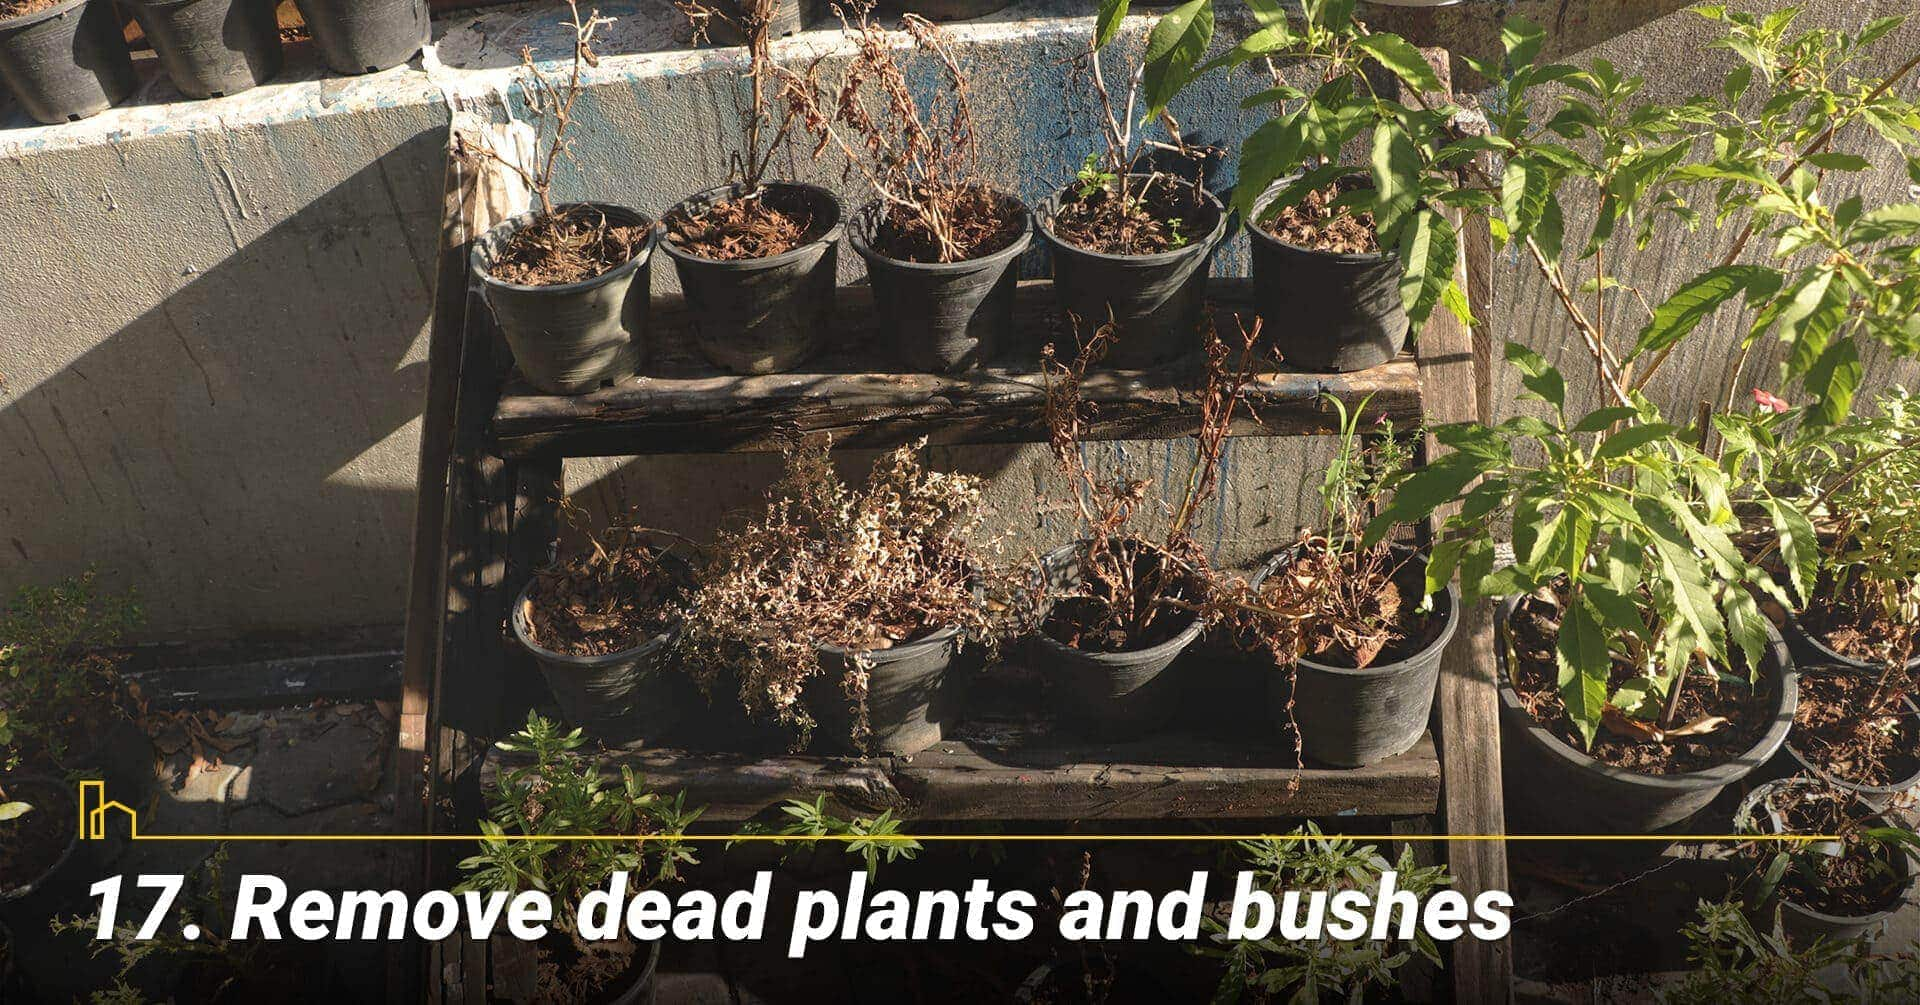 Remove dead plants and bushes, keep the backyard clean